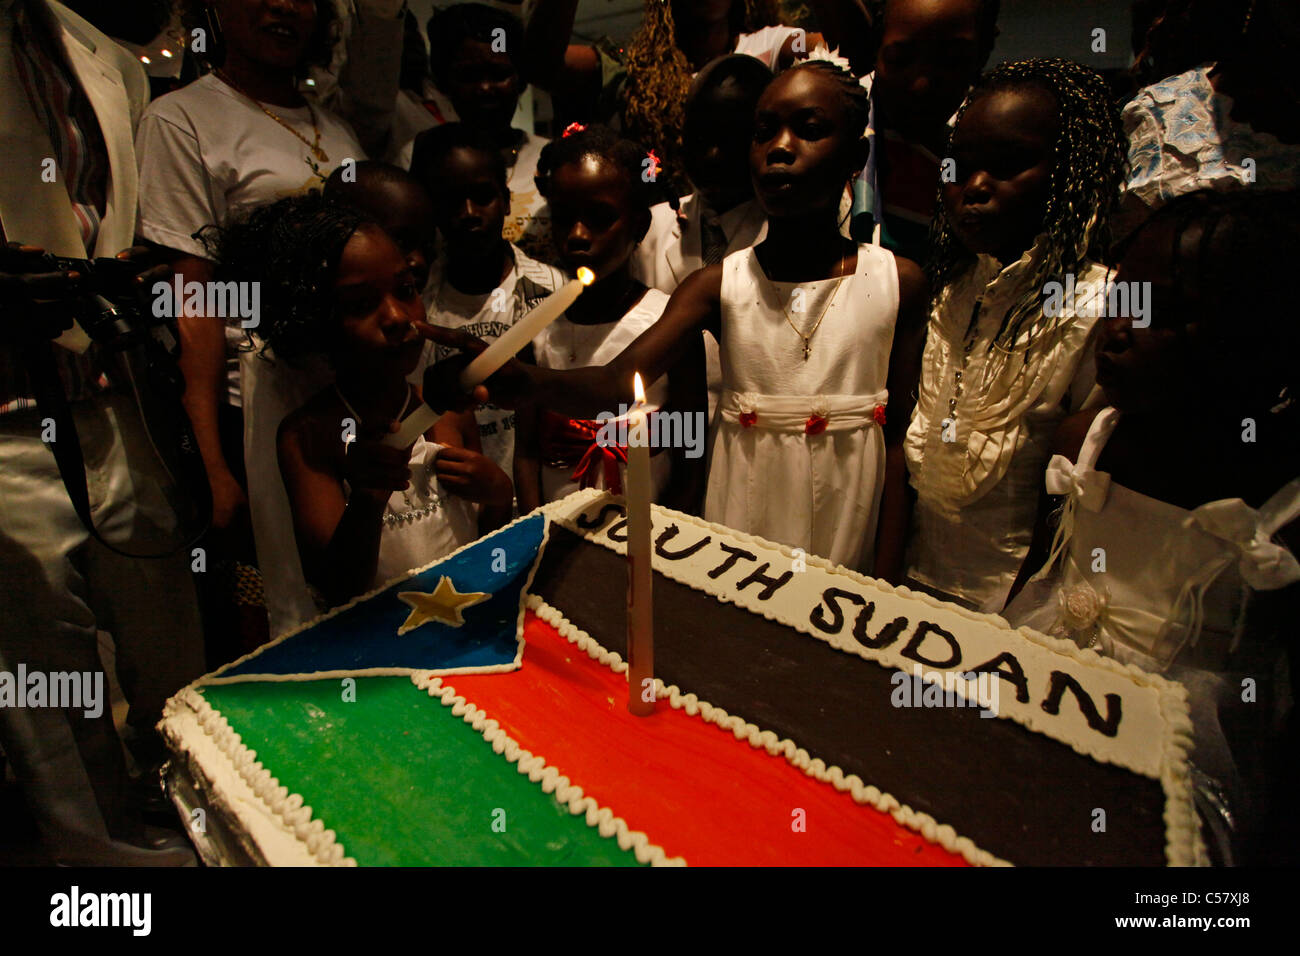 South Sudanese children celebrate with a Republic of South Sudan flag cake  during independence celebrations